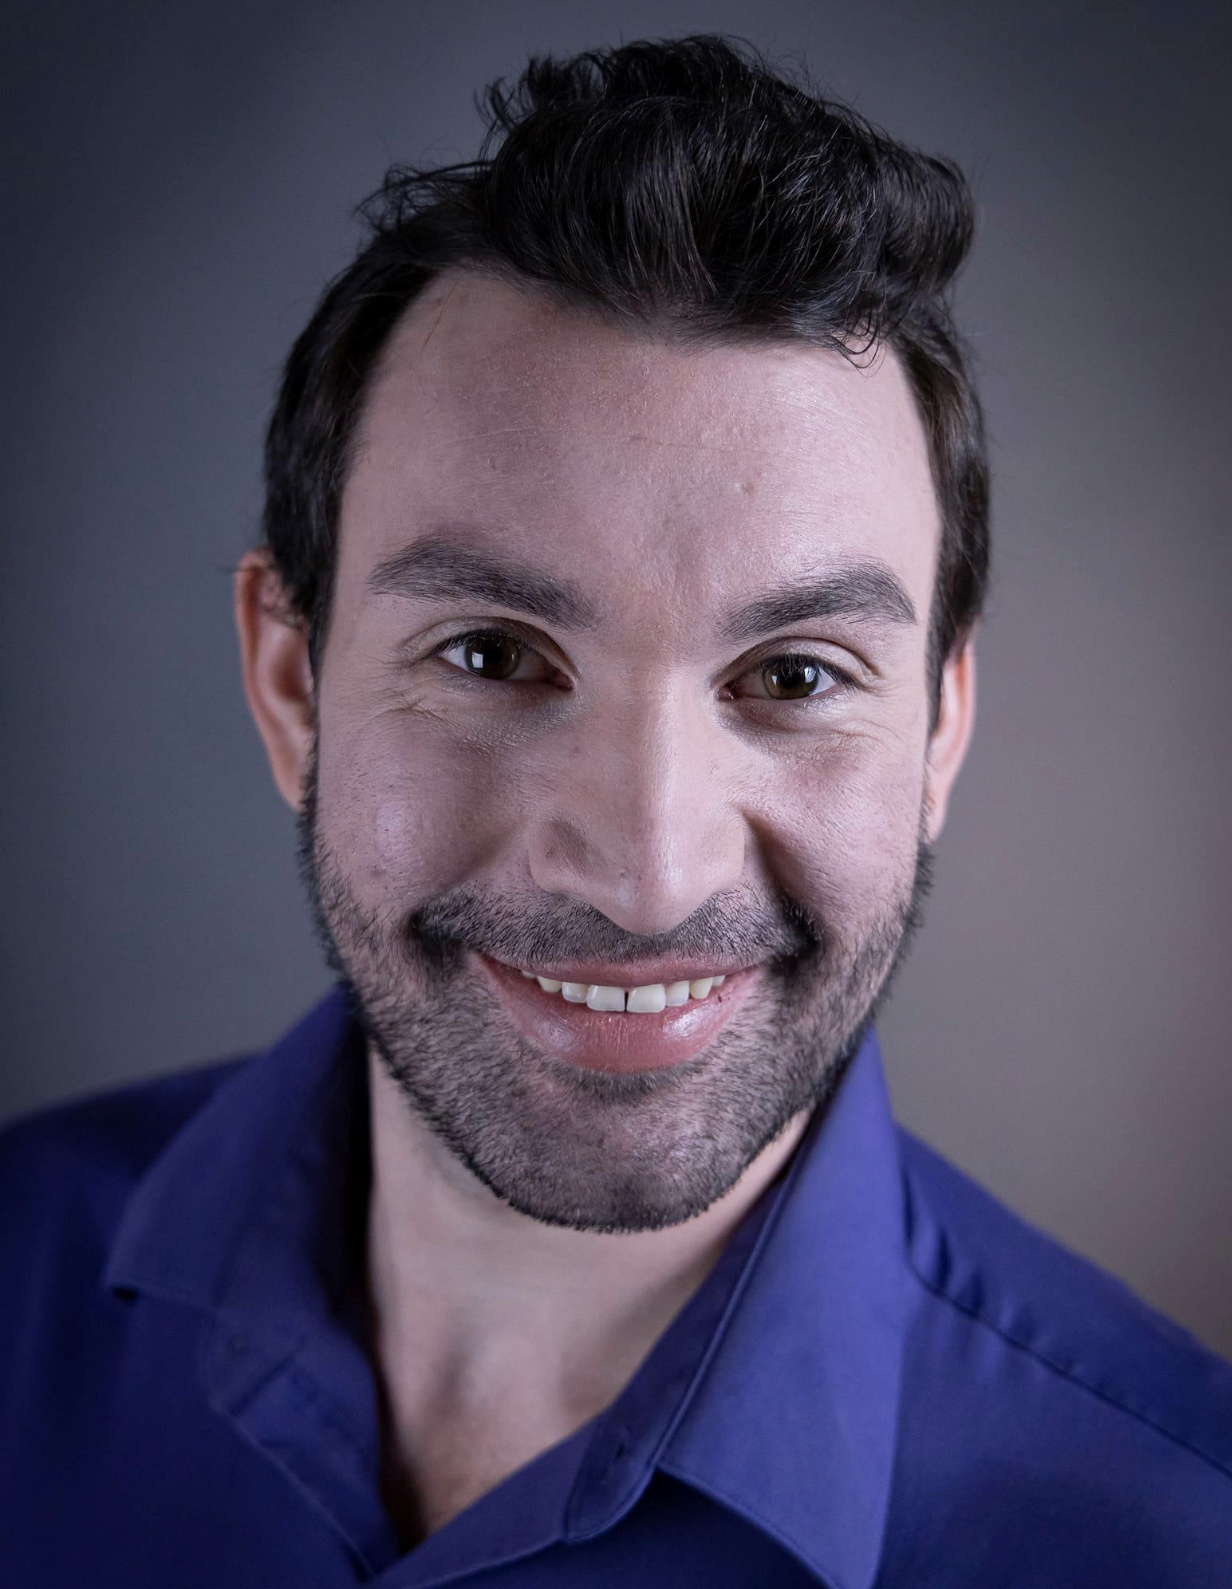 Mauro Palmerin-Segura is our Laner of the Week!